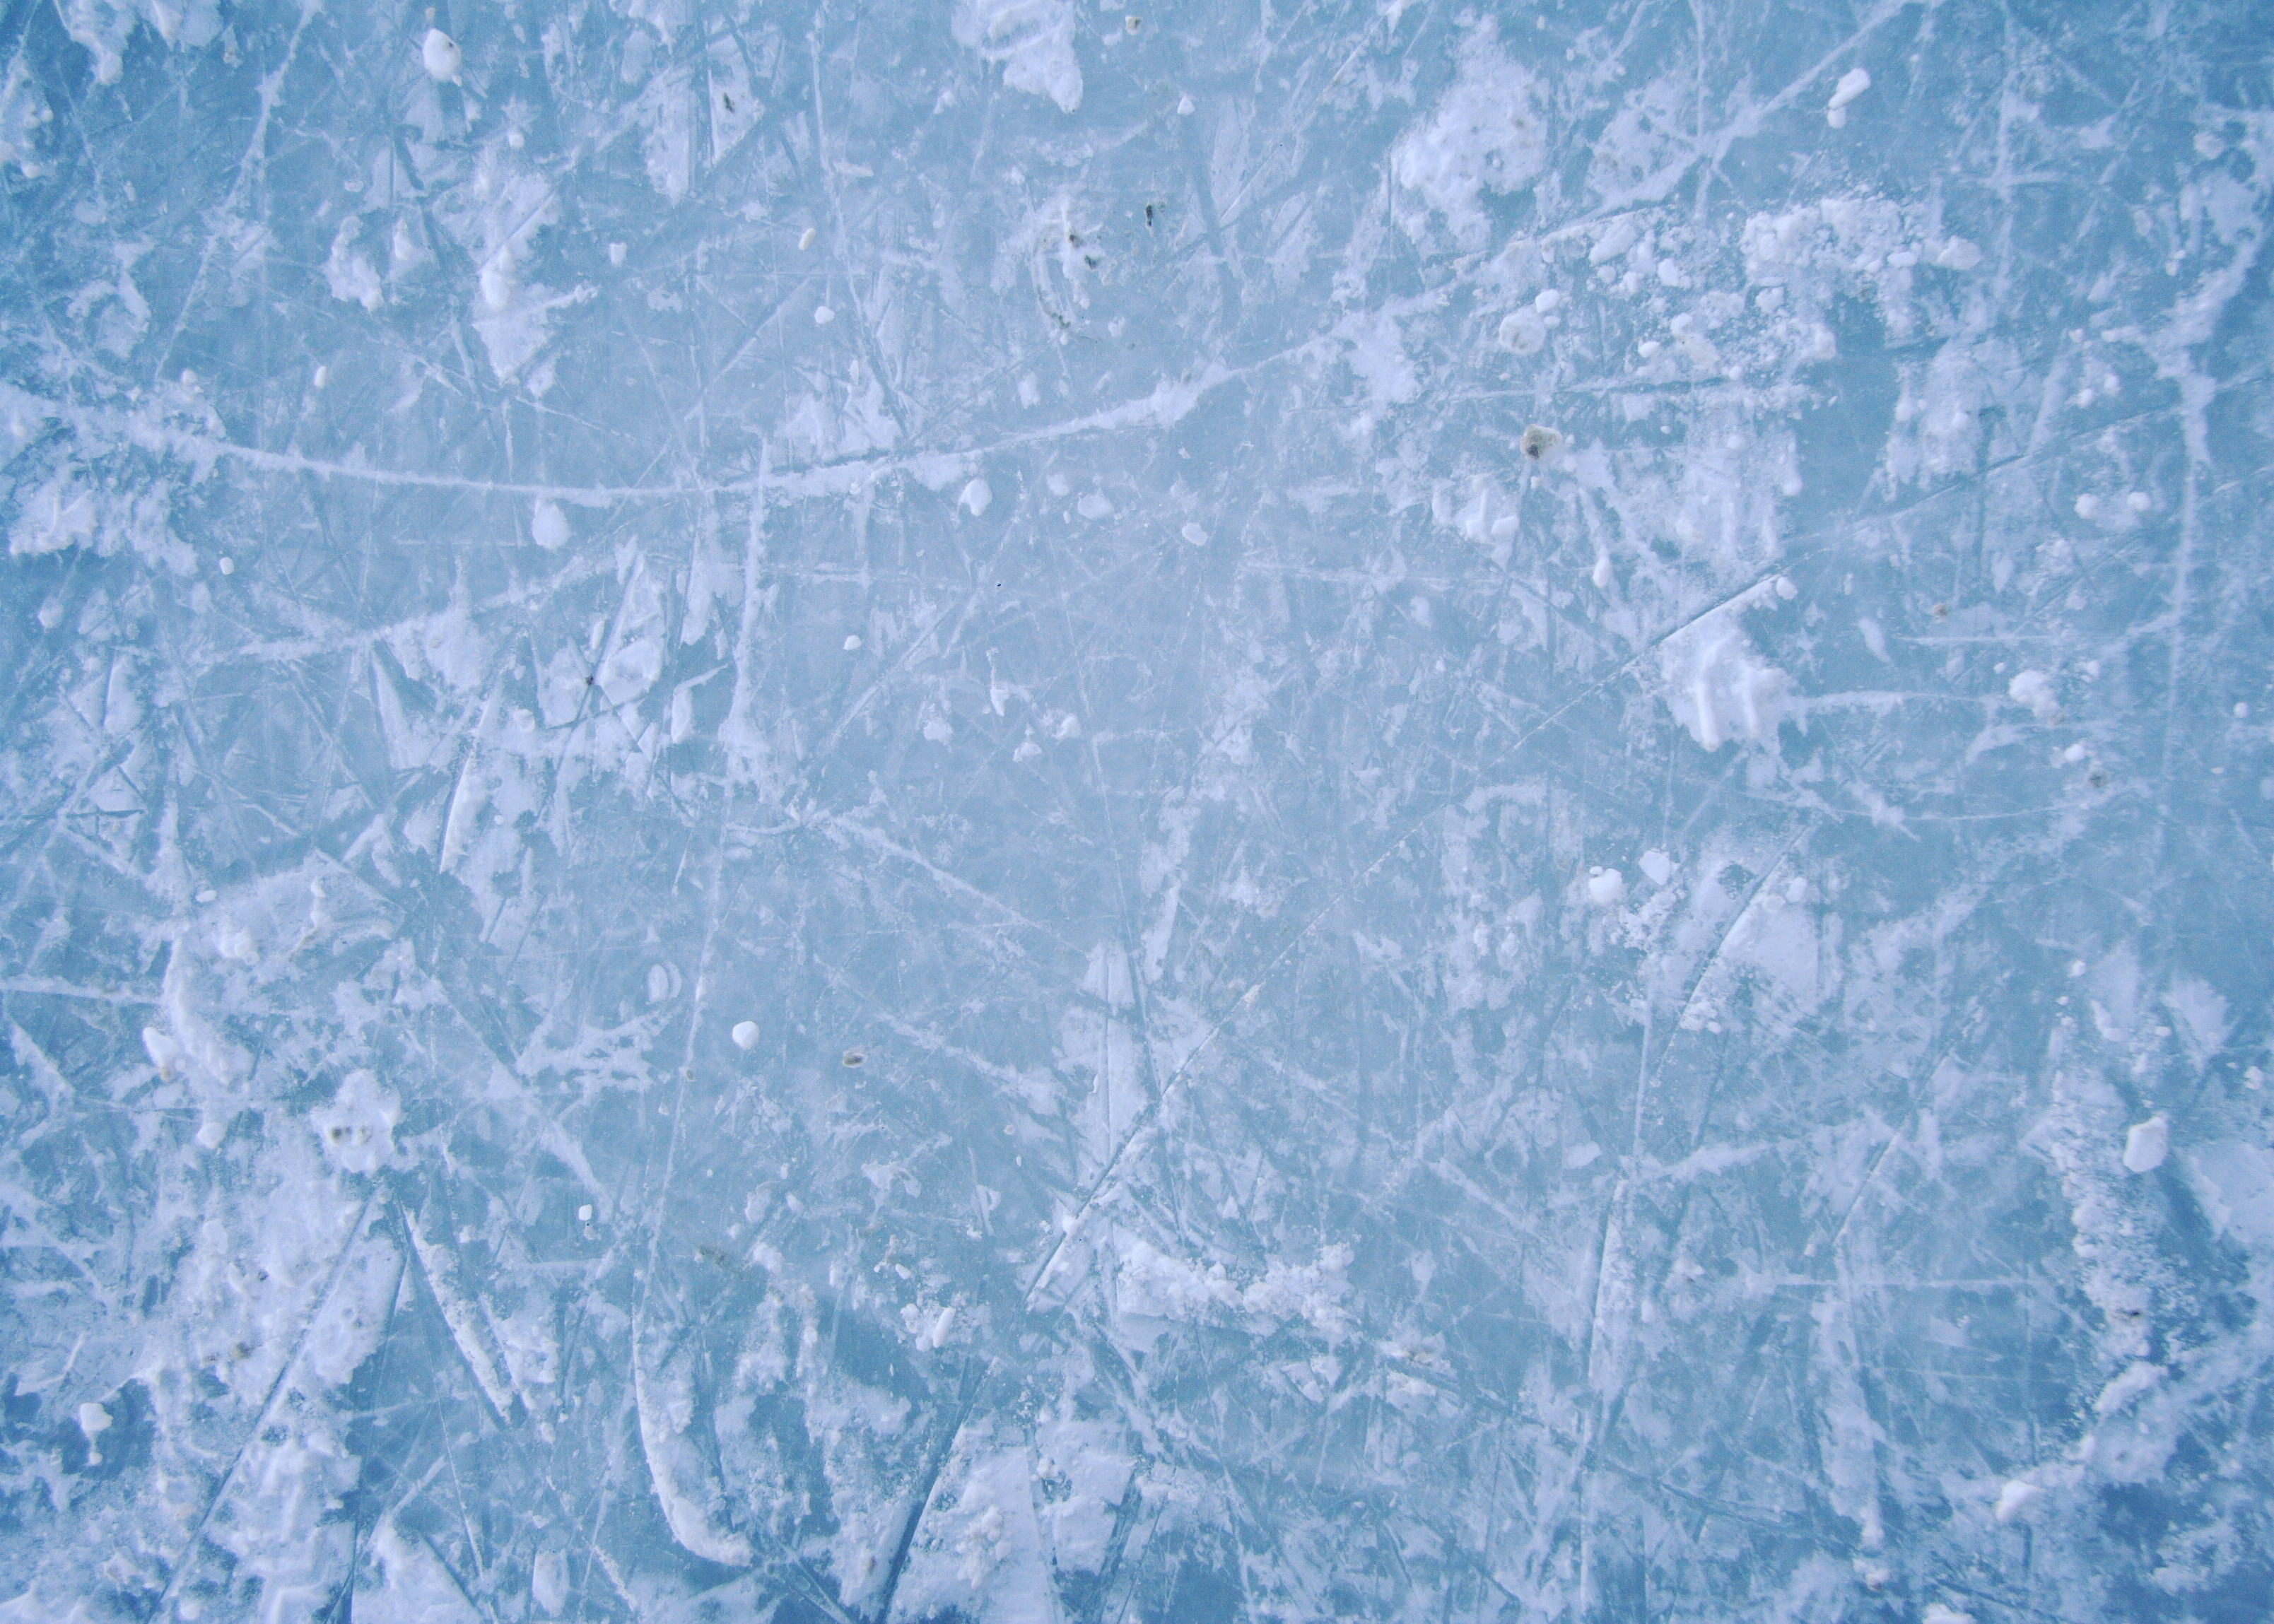 bigstock-texture-of-ice-skating-rink-ou-15706598.jpg